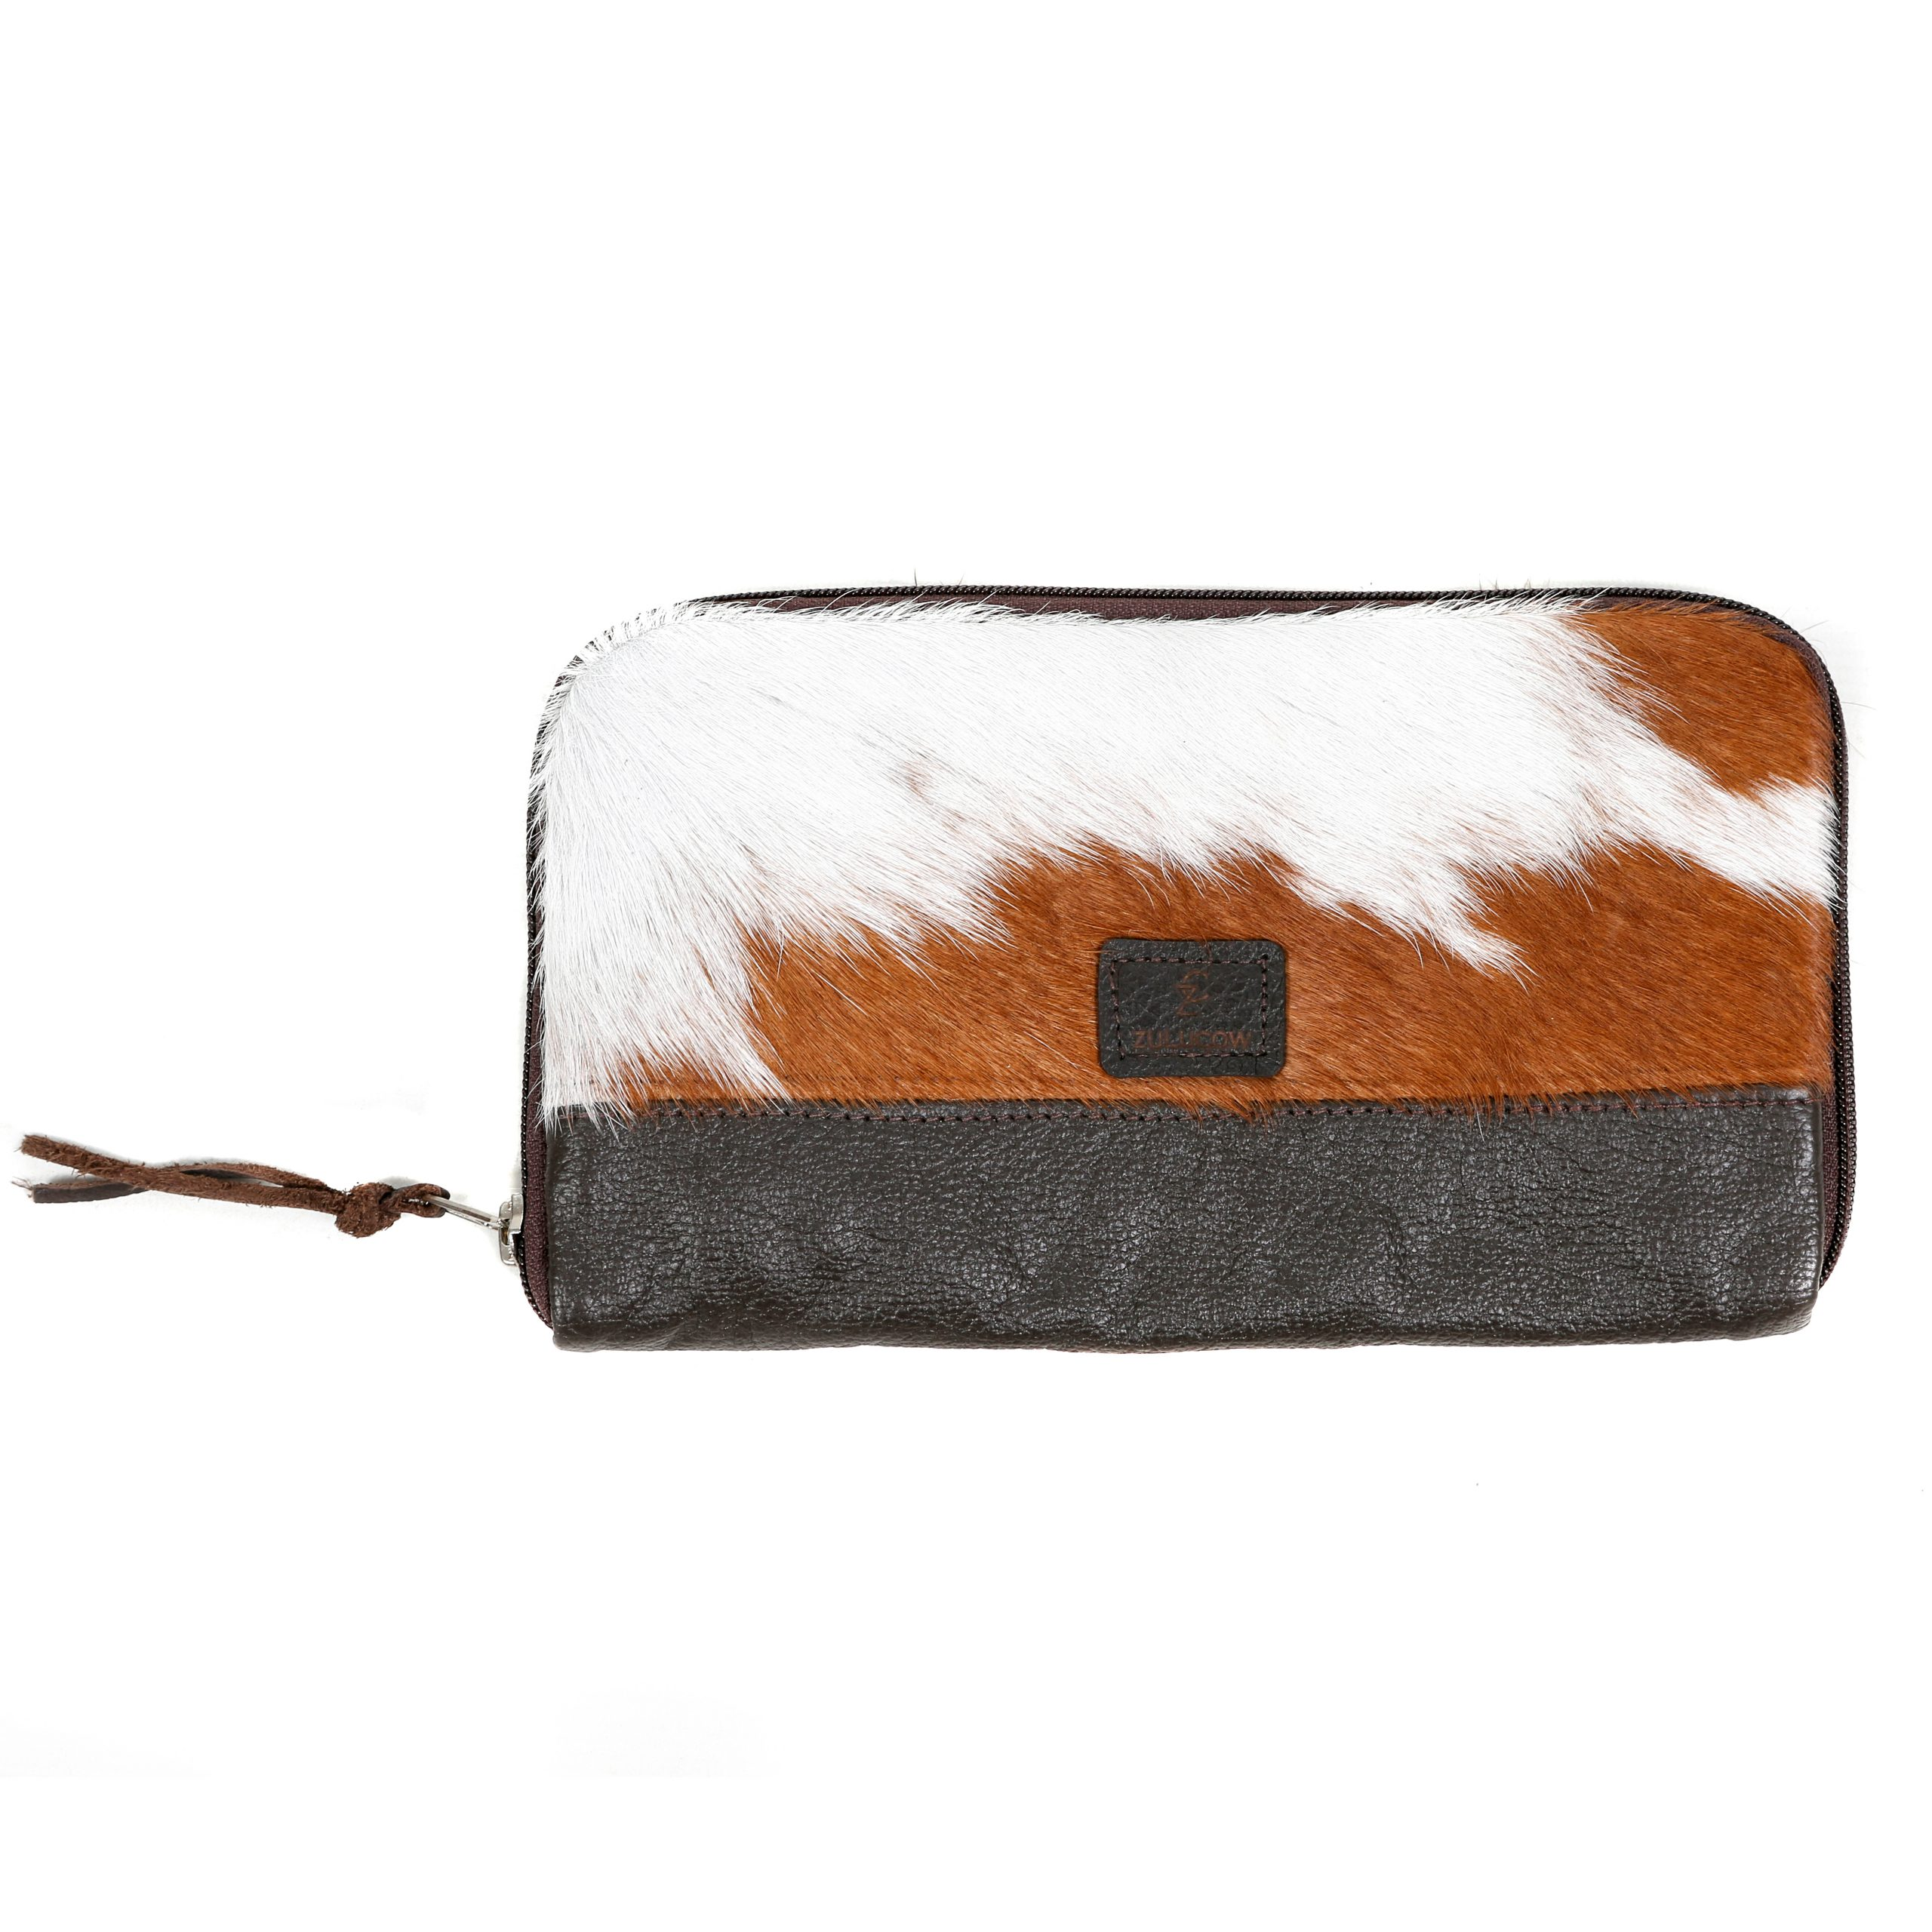 cowhide bag, leather bag, handbag, clutch, clutchbag, brown & white, evening bag, cowhide accessories, evening bag, fashion accessories